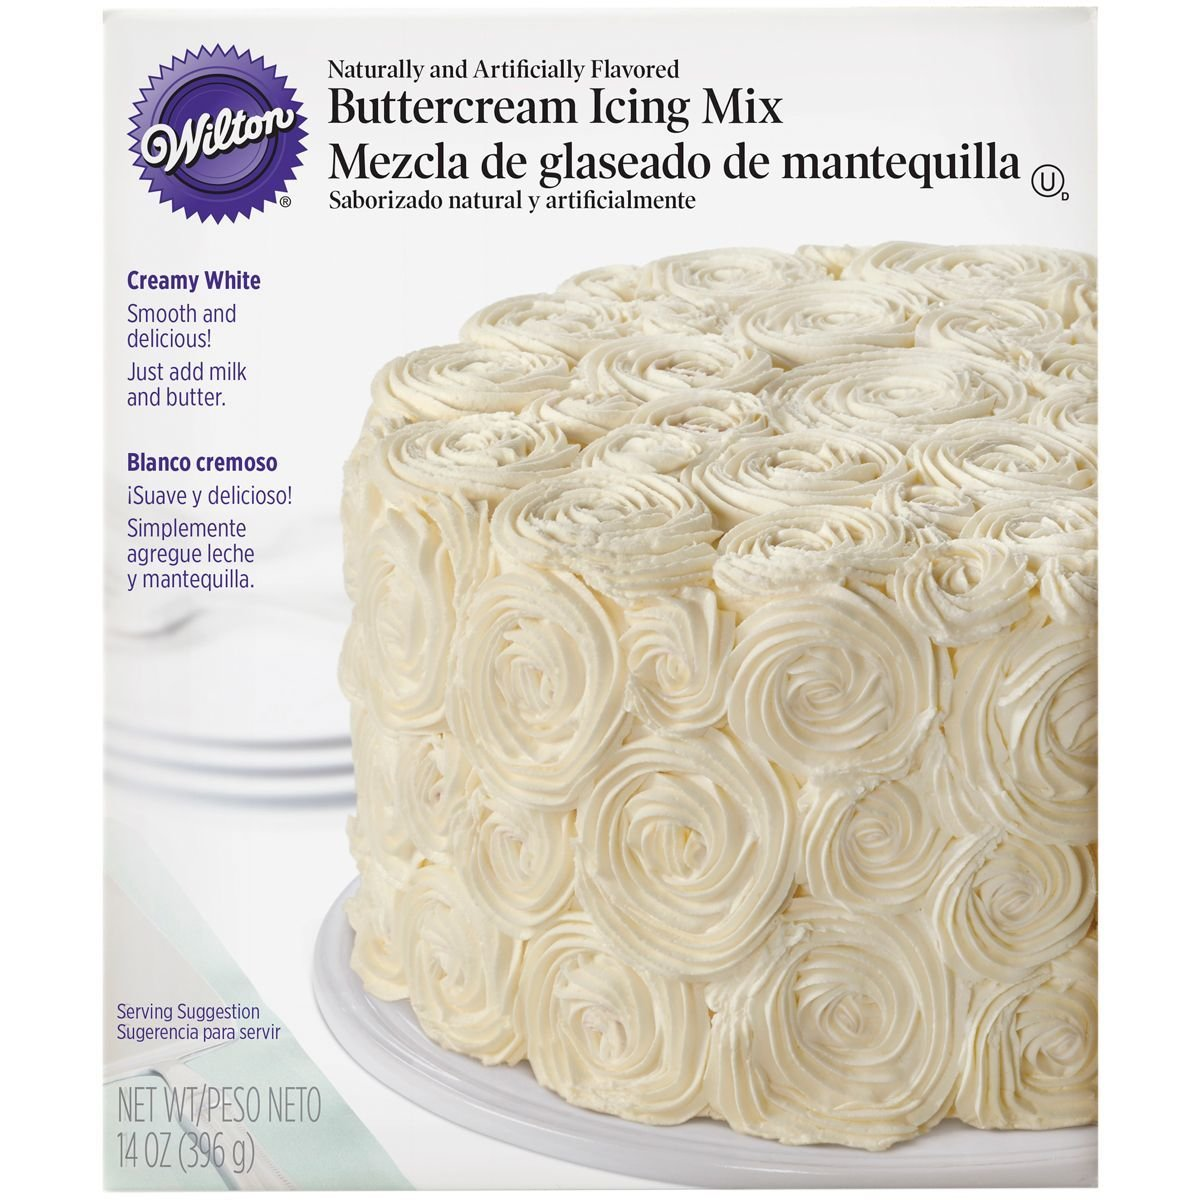 Wilton Creamy White Buttercream Icing Mix 400g